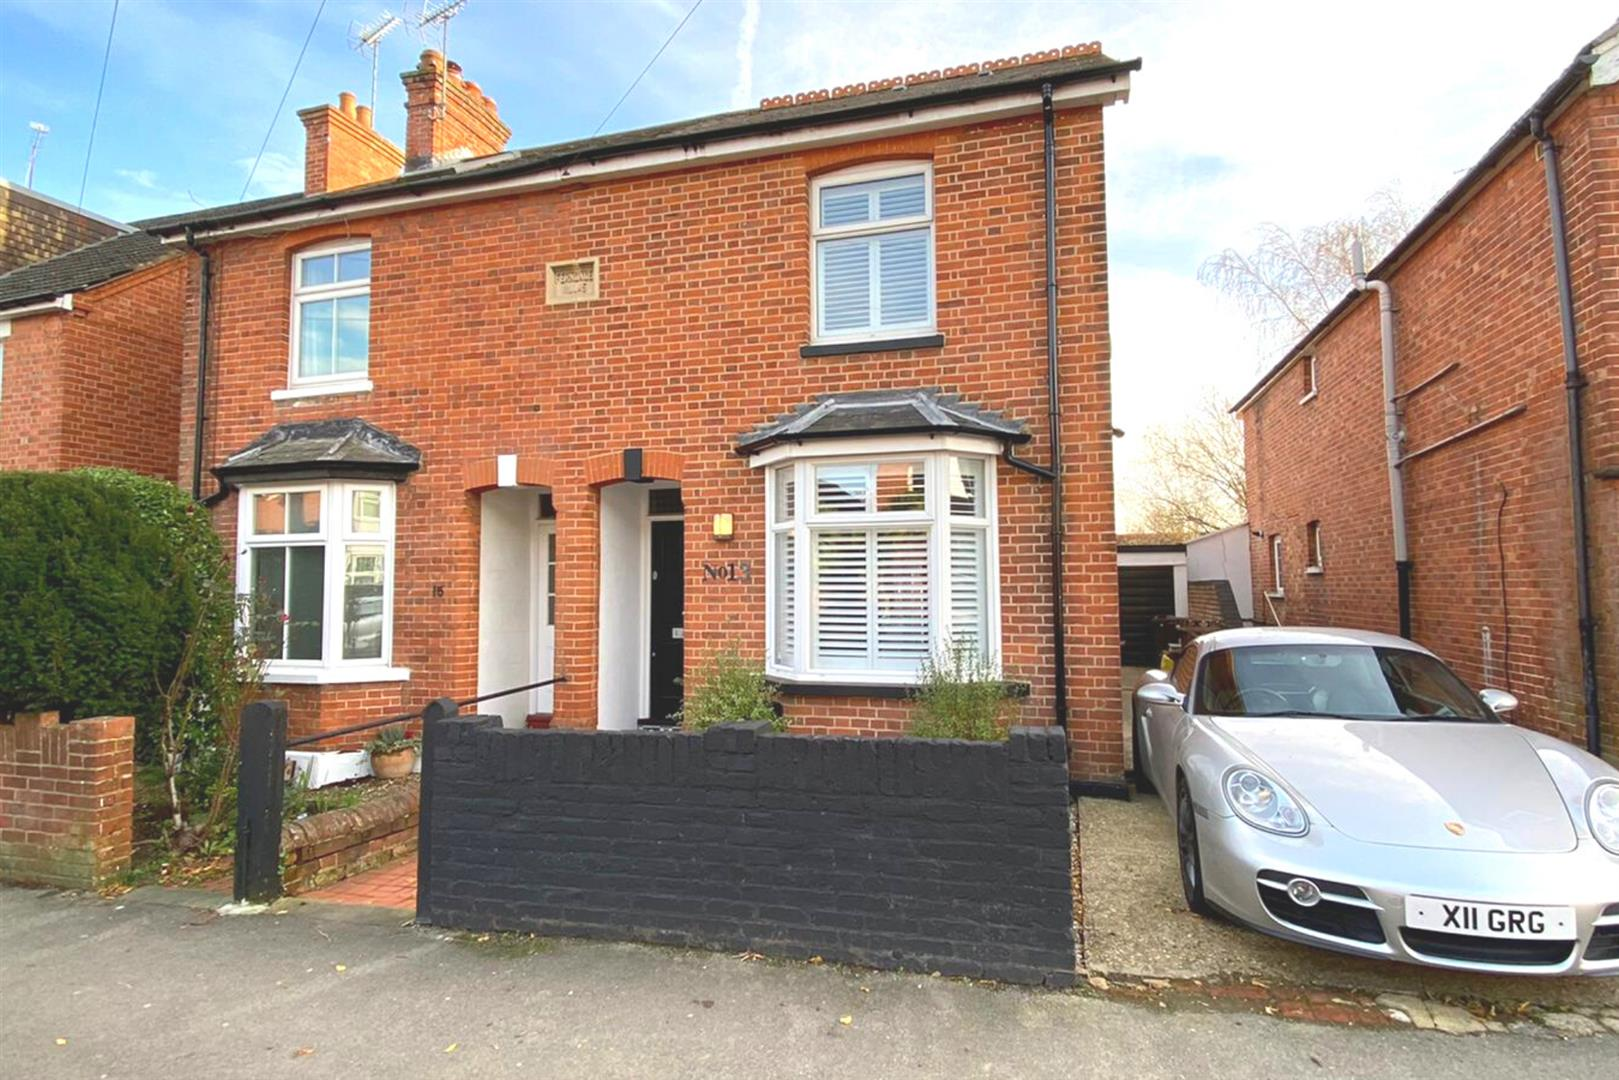 2 bed house for sale, RG40